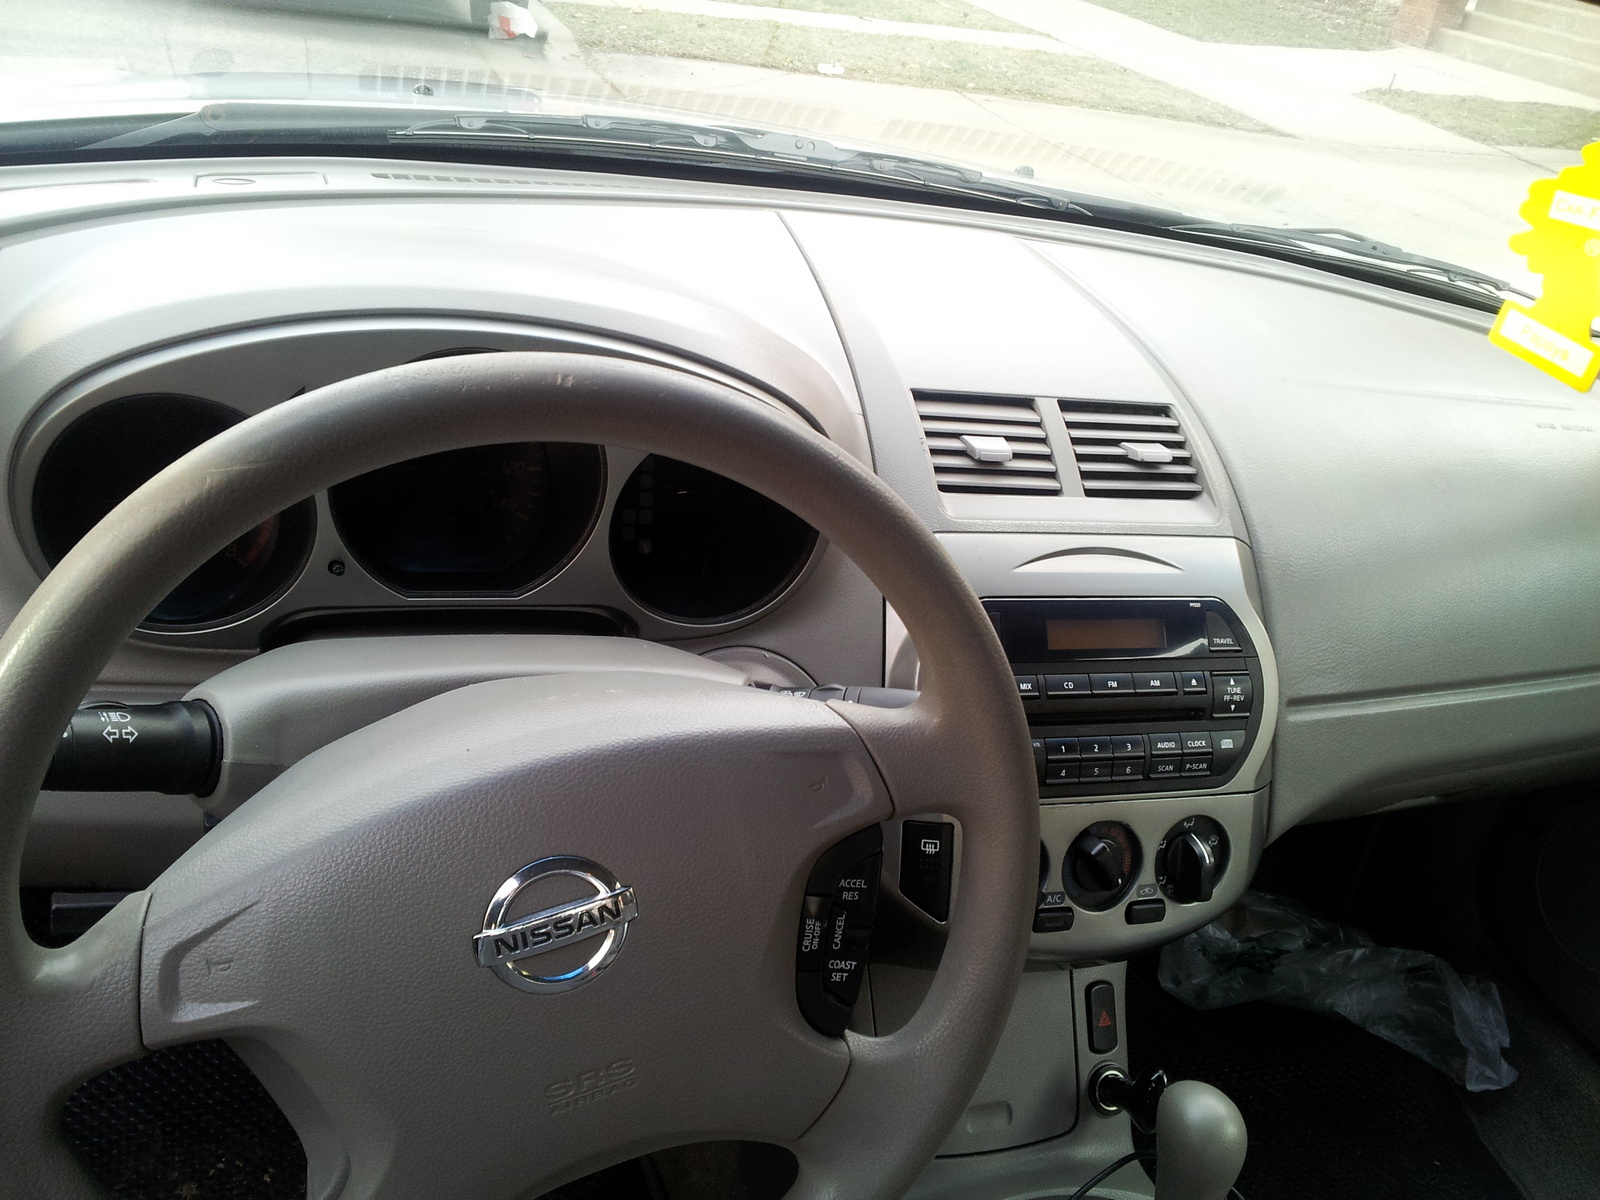 Nissan altima 2003 interior pr energy all vanachro Images